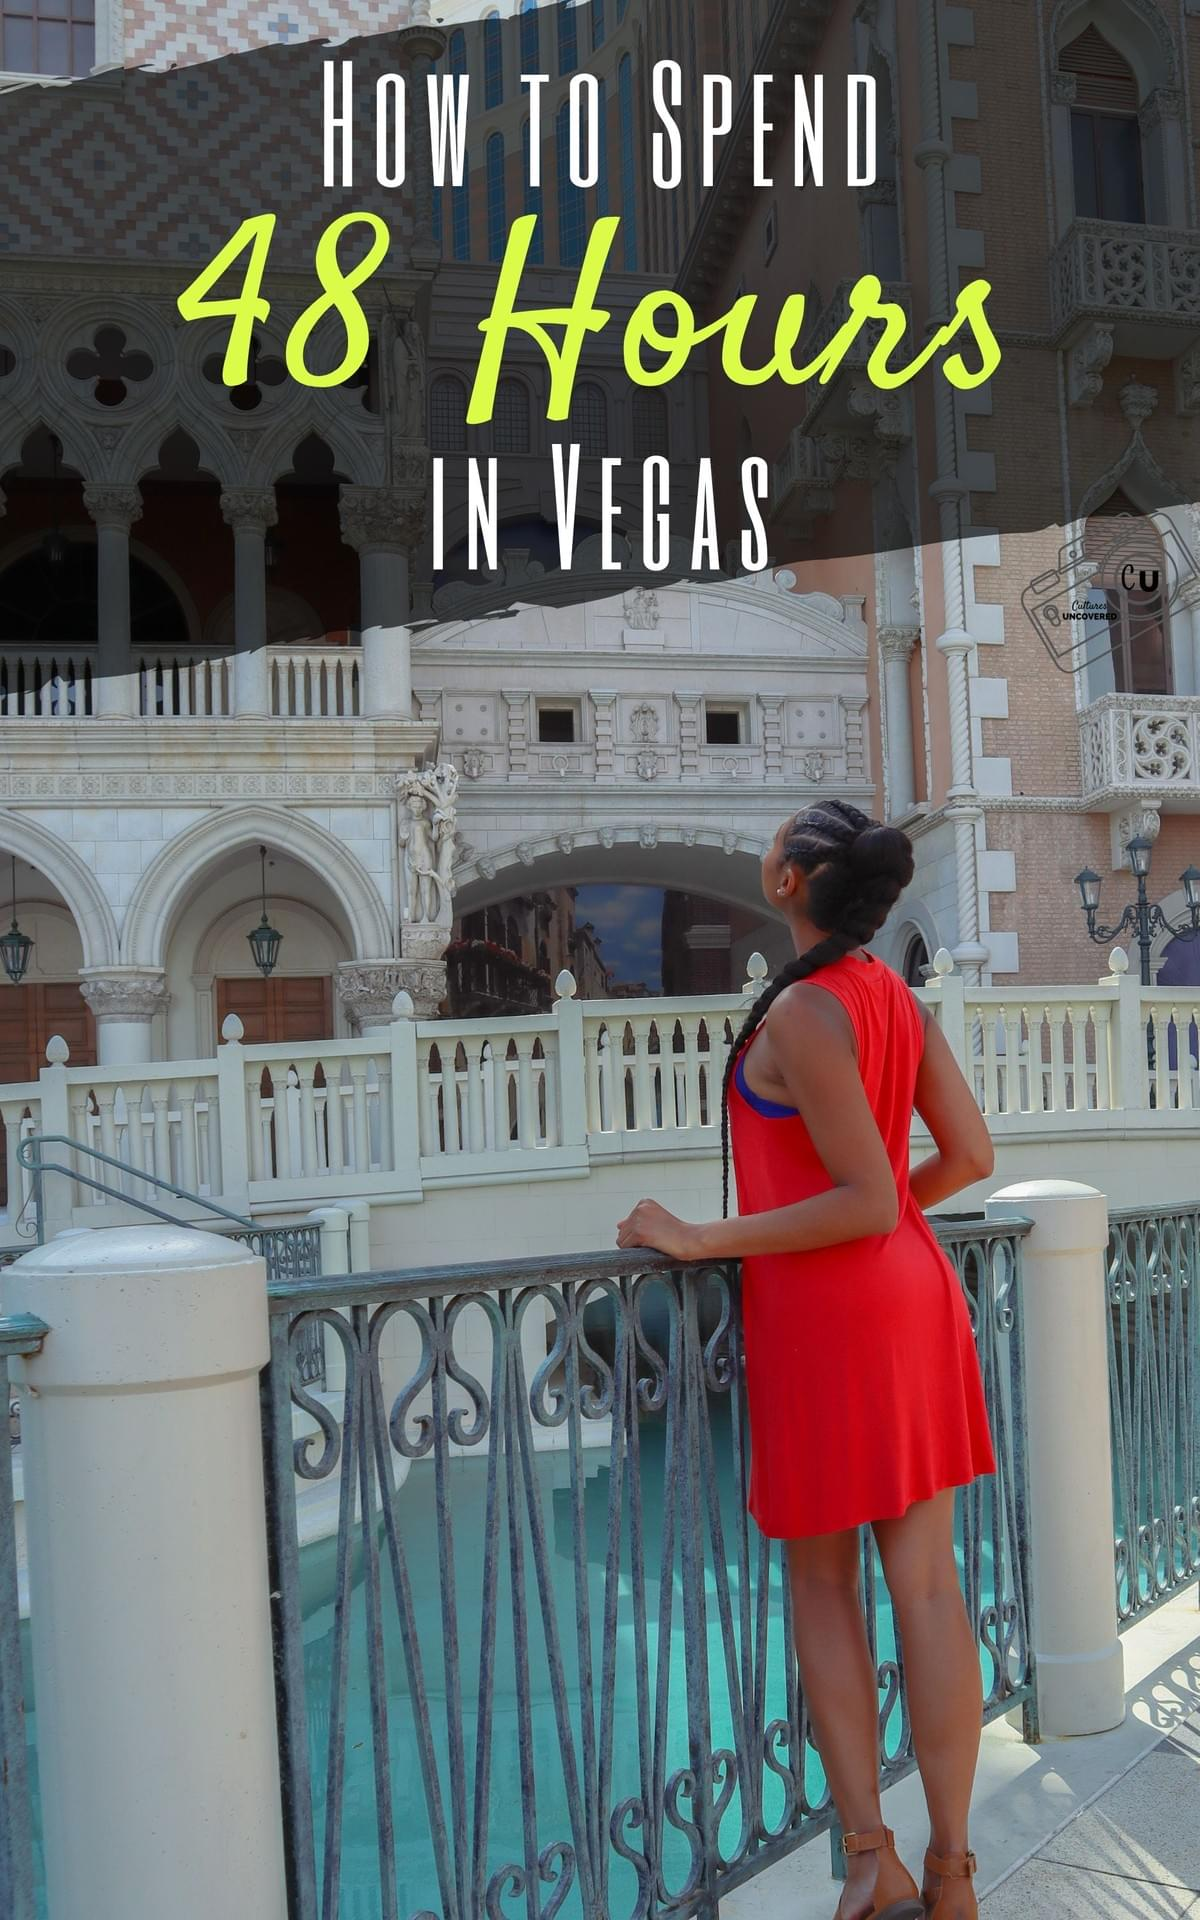 How To Spend 48 Hours In Las Vegas Like I Did For My 30th